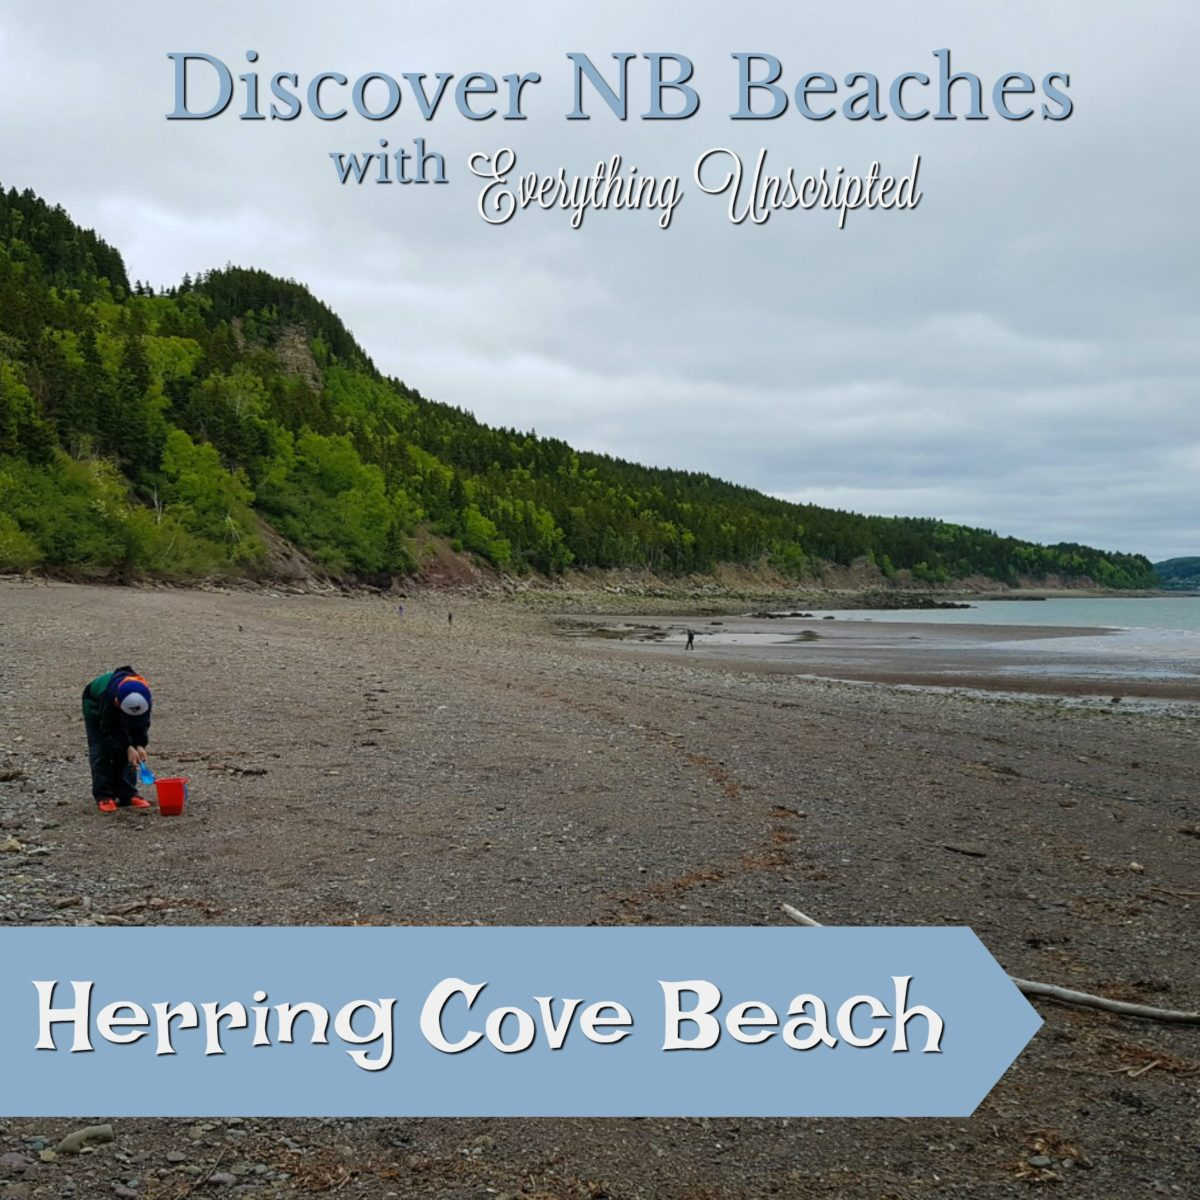 Discover NB Beaches – Herring Cove Beach